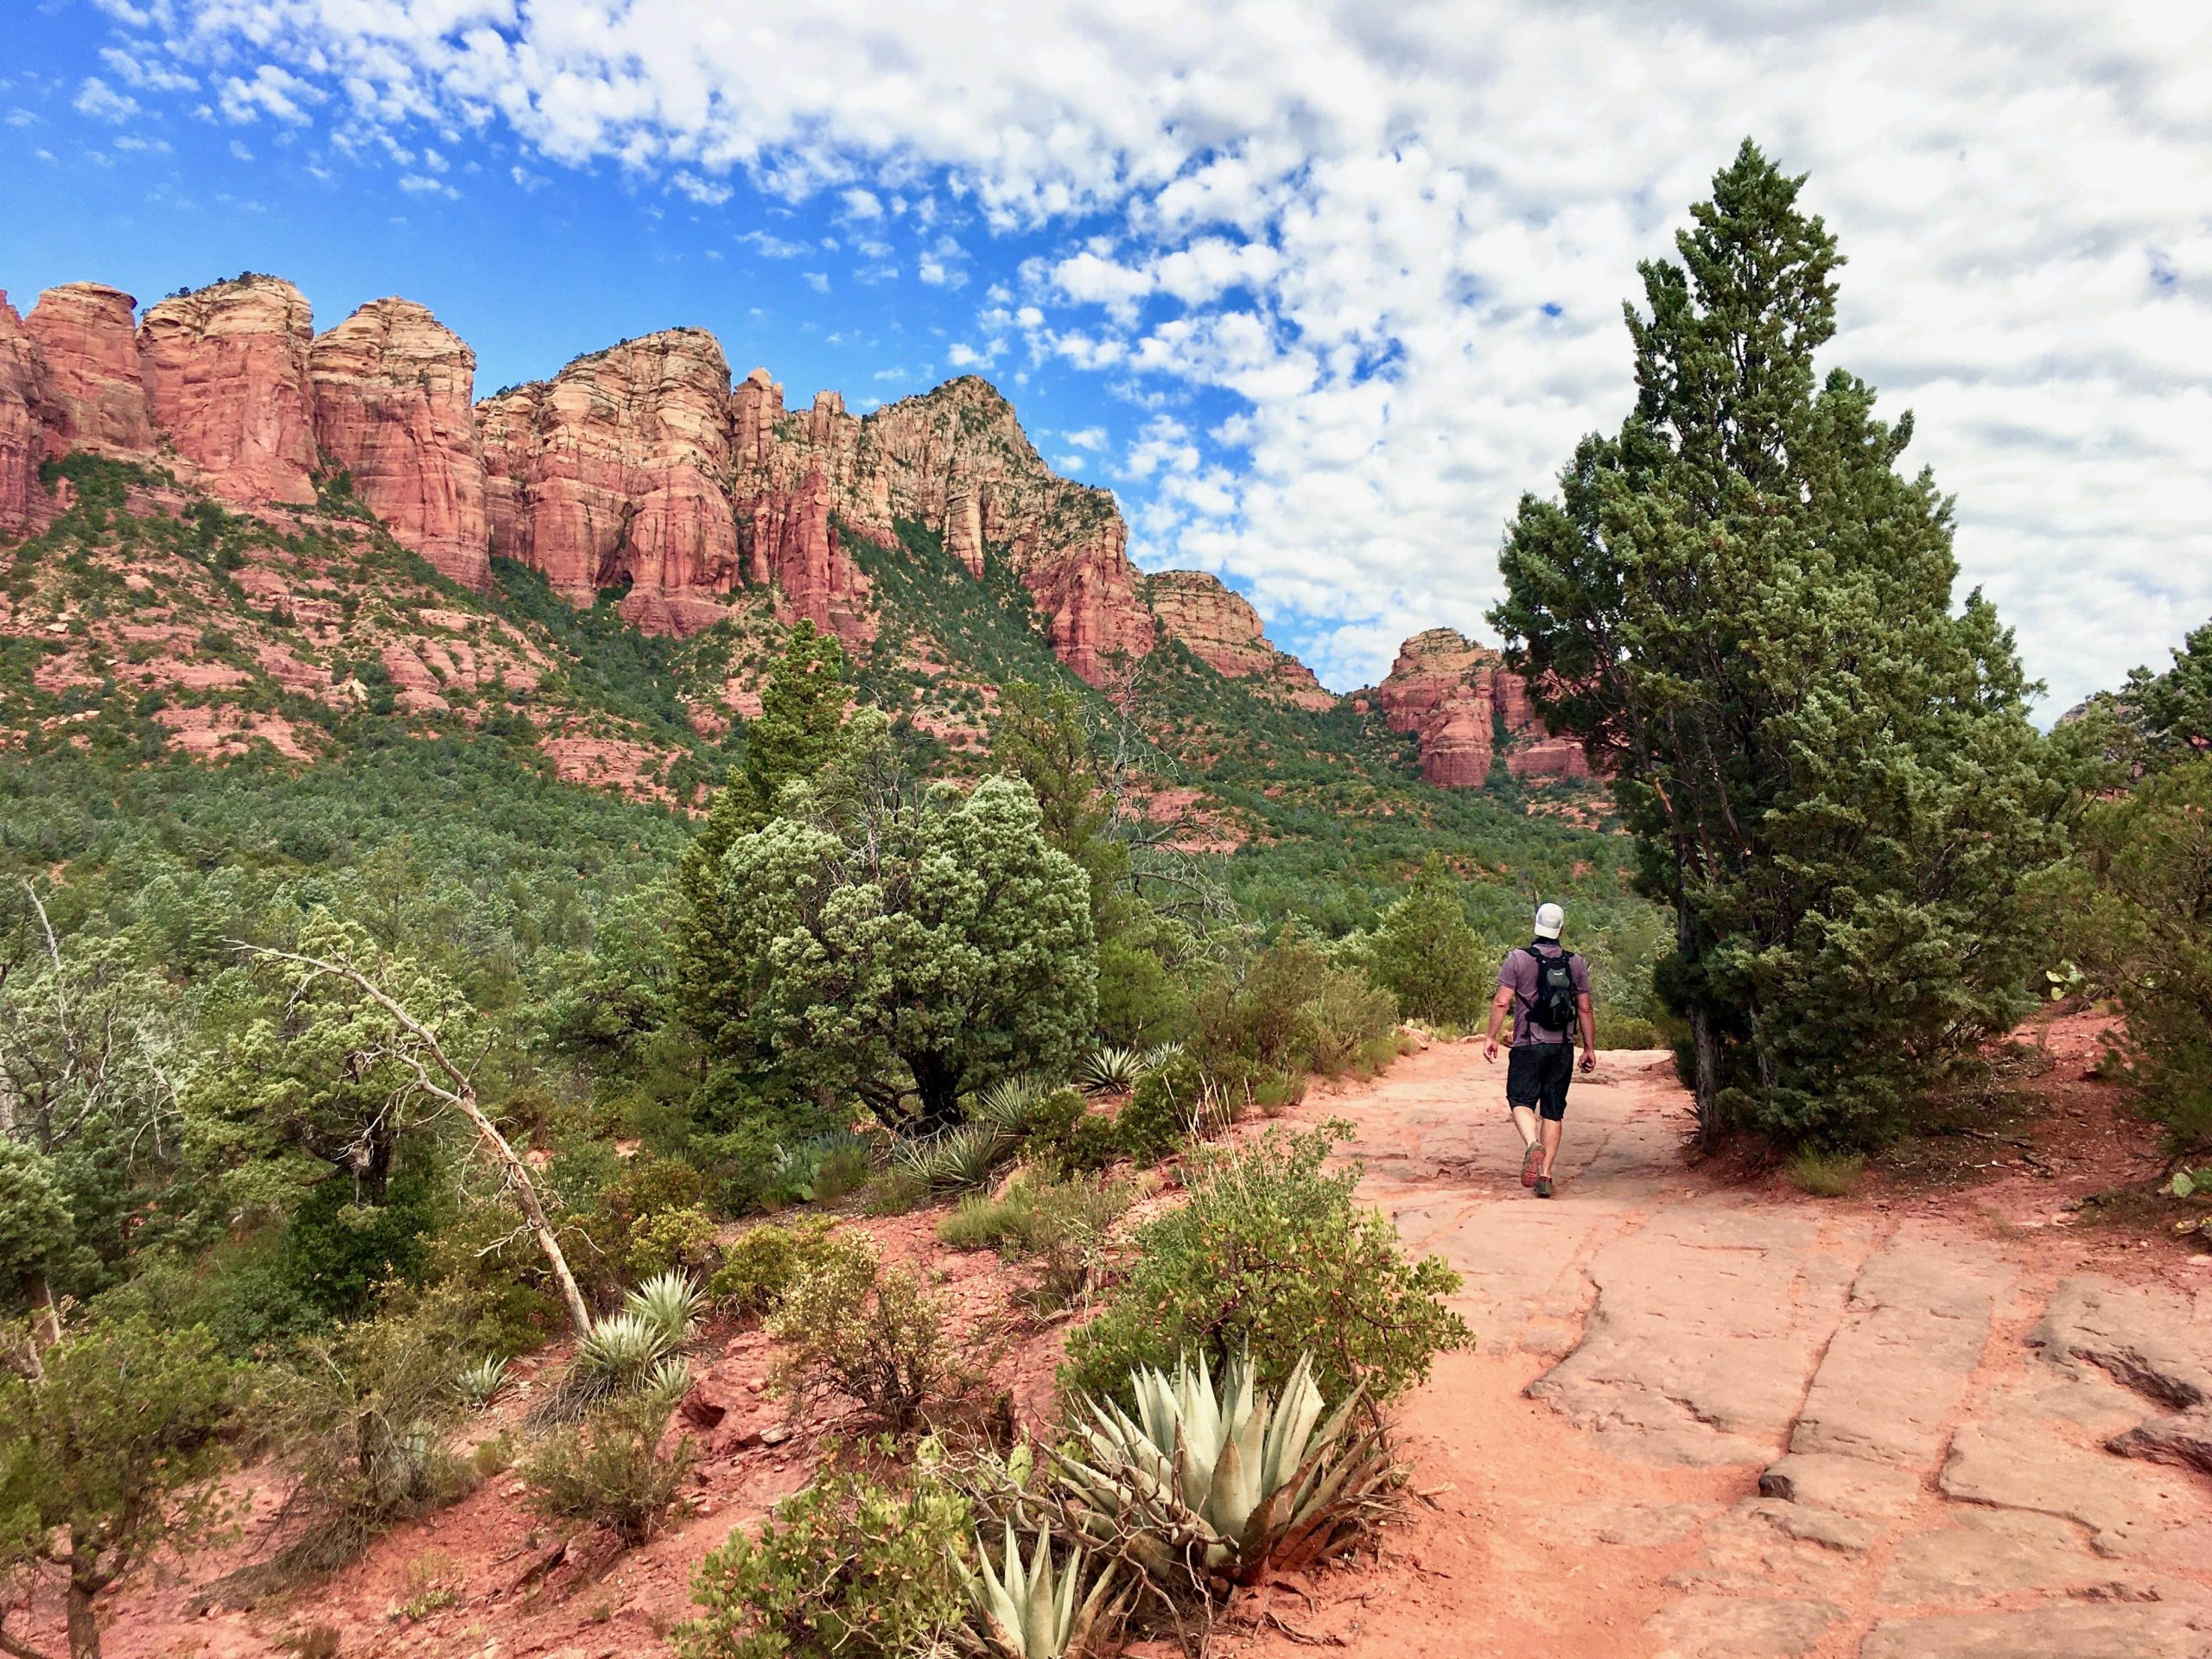 Hiking Soldier Pass Trail in Sedona AZ